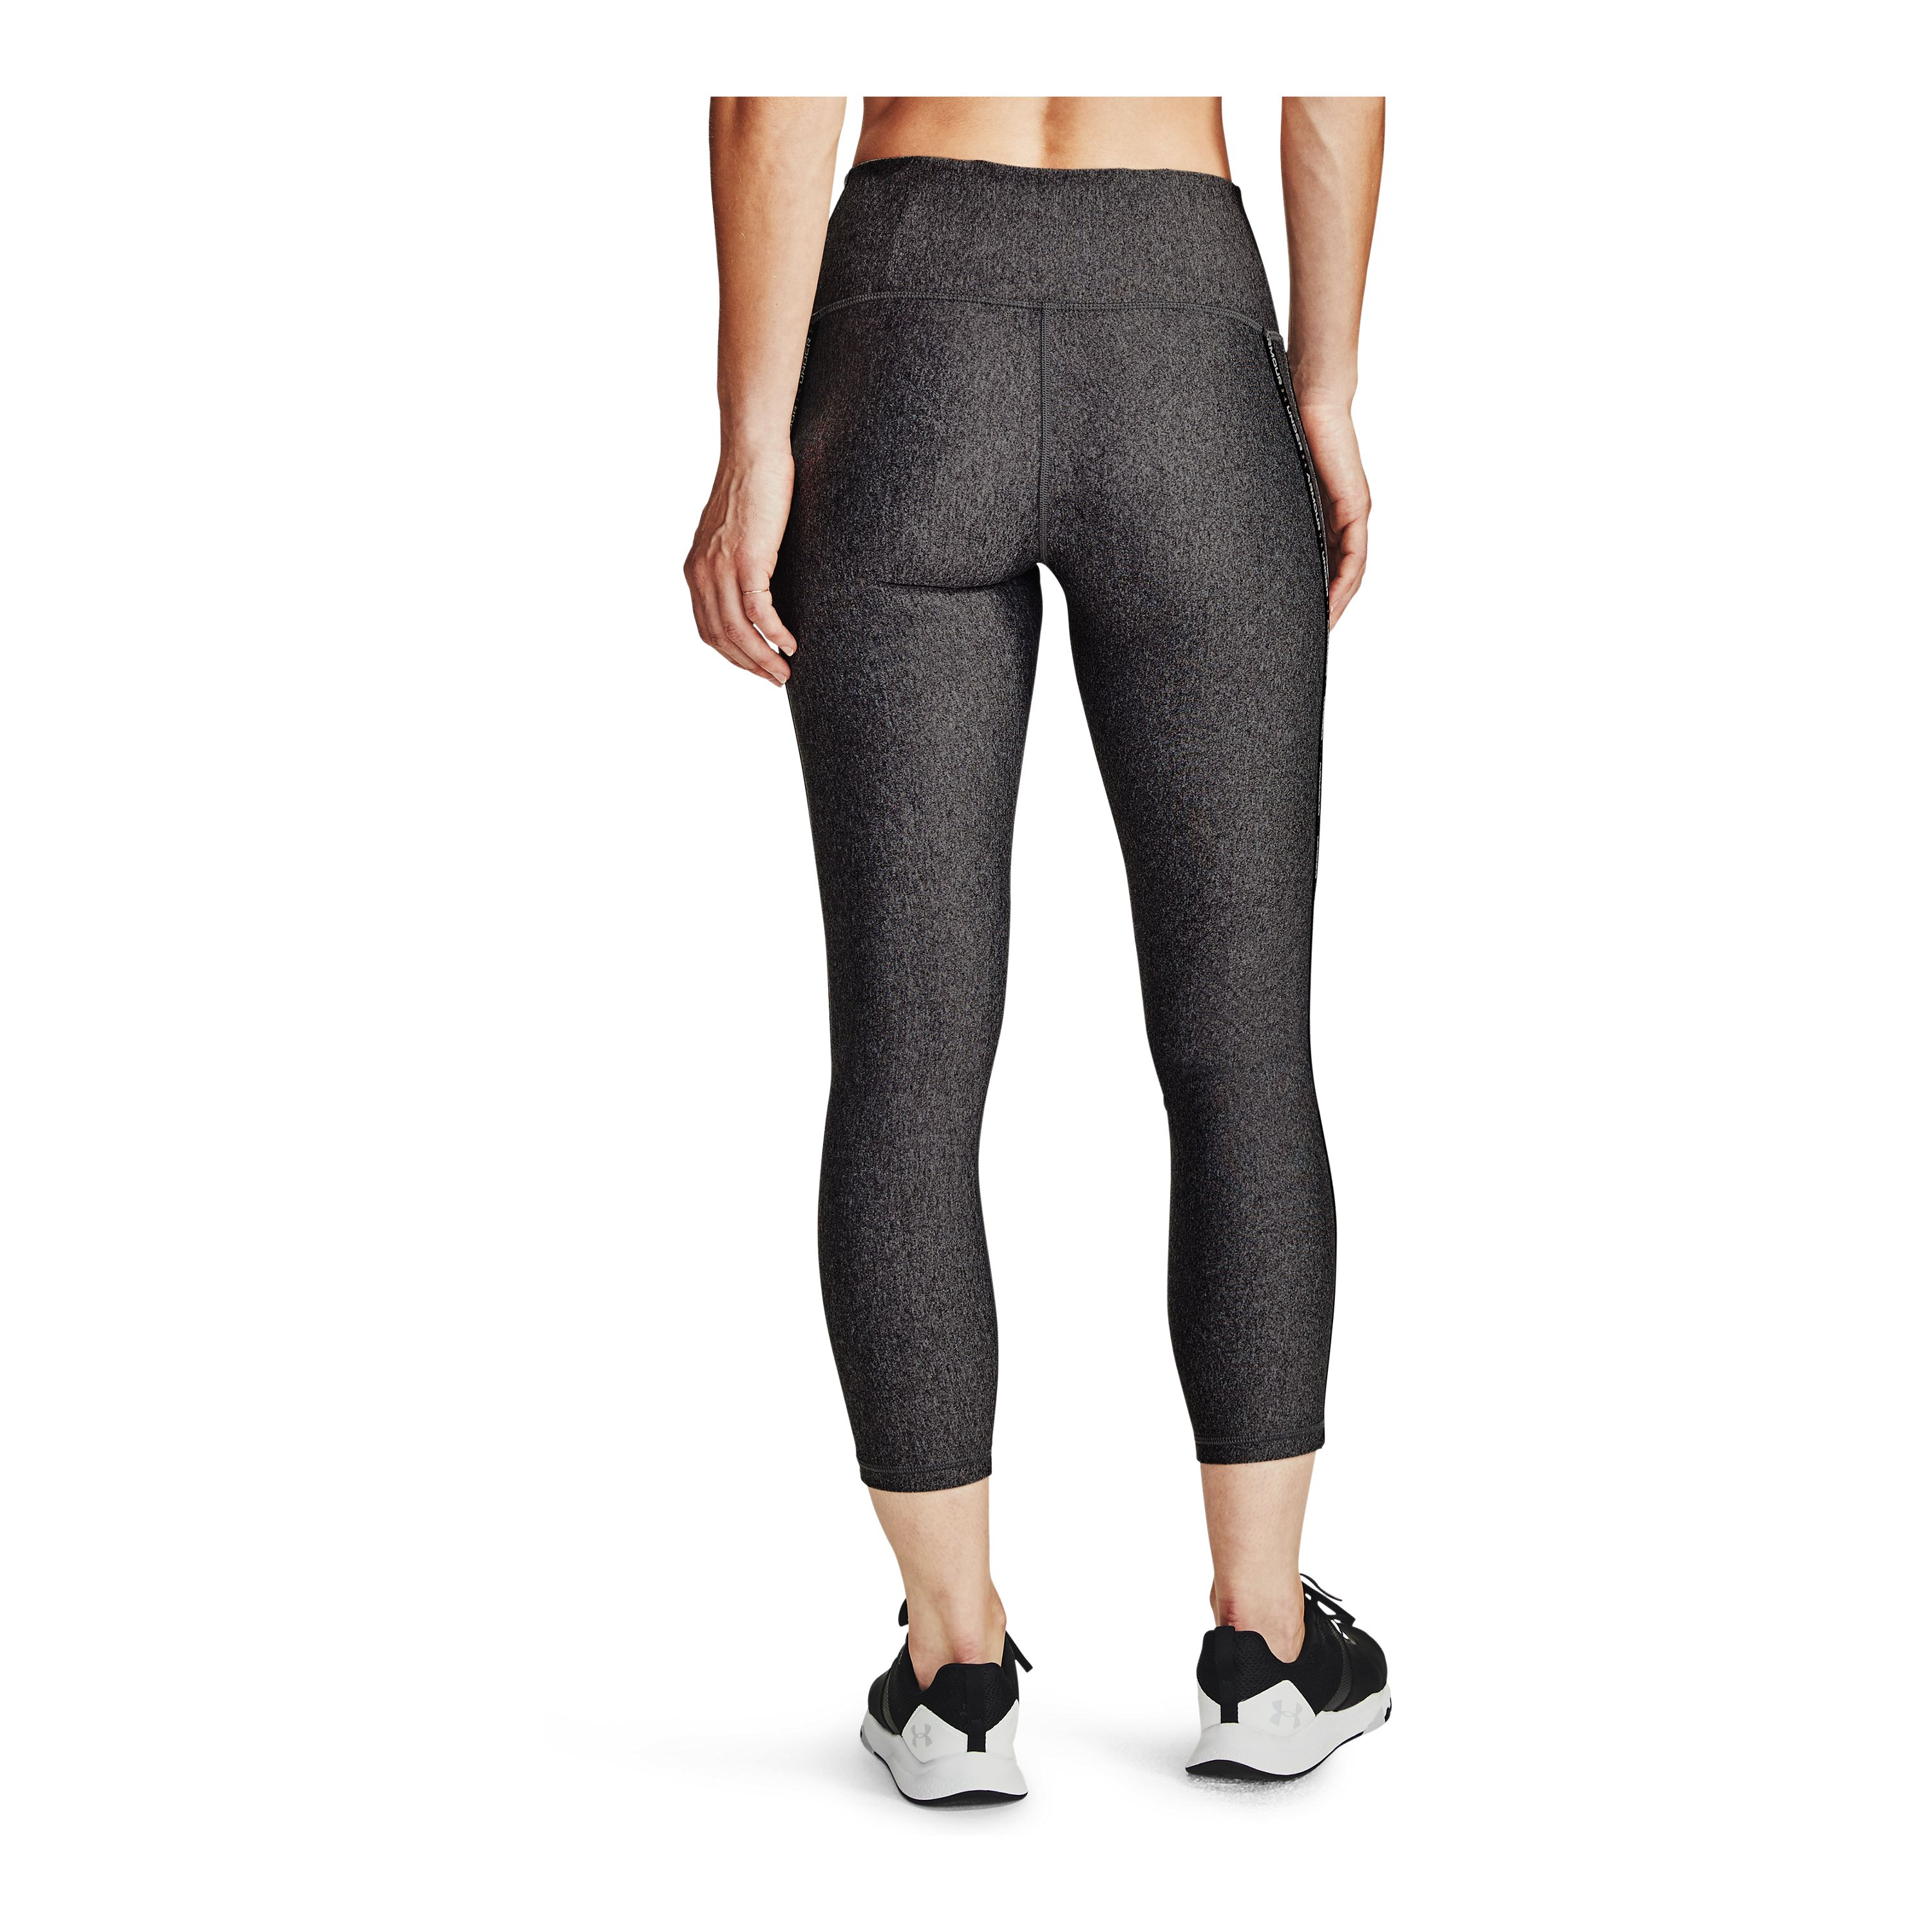 Calza Mujer Under Armour Hg Wmt Ankle Crop Gris